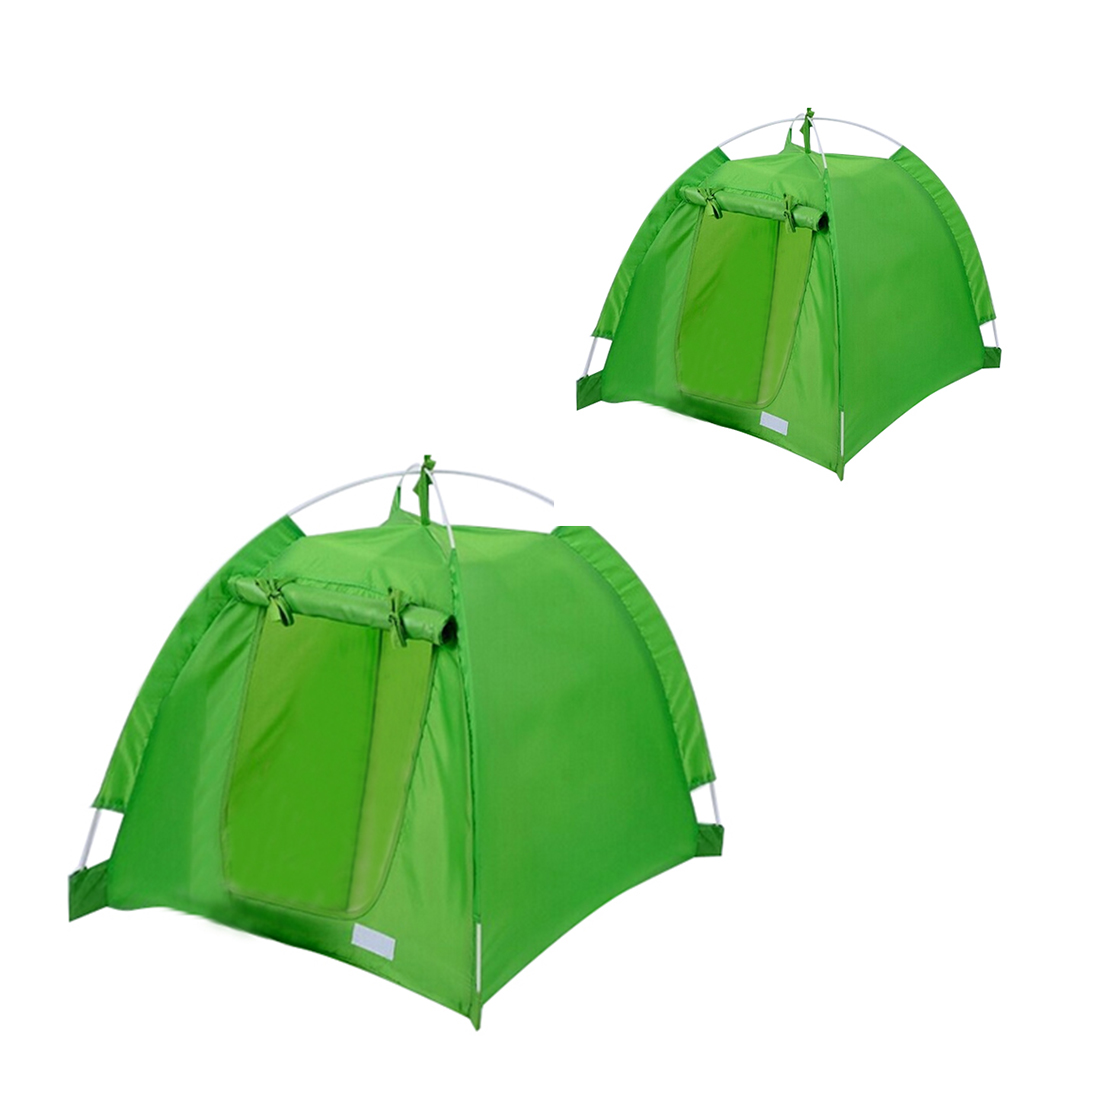 Portable Shelter Dog : Portable outdoor camping dog house pet sun shelter